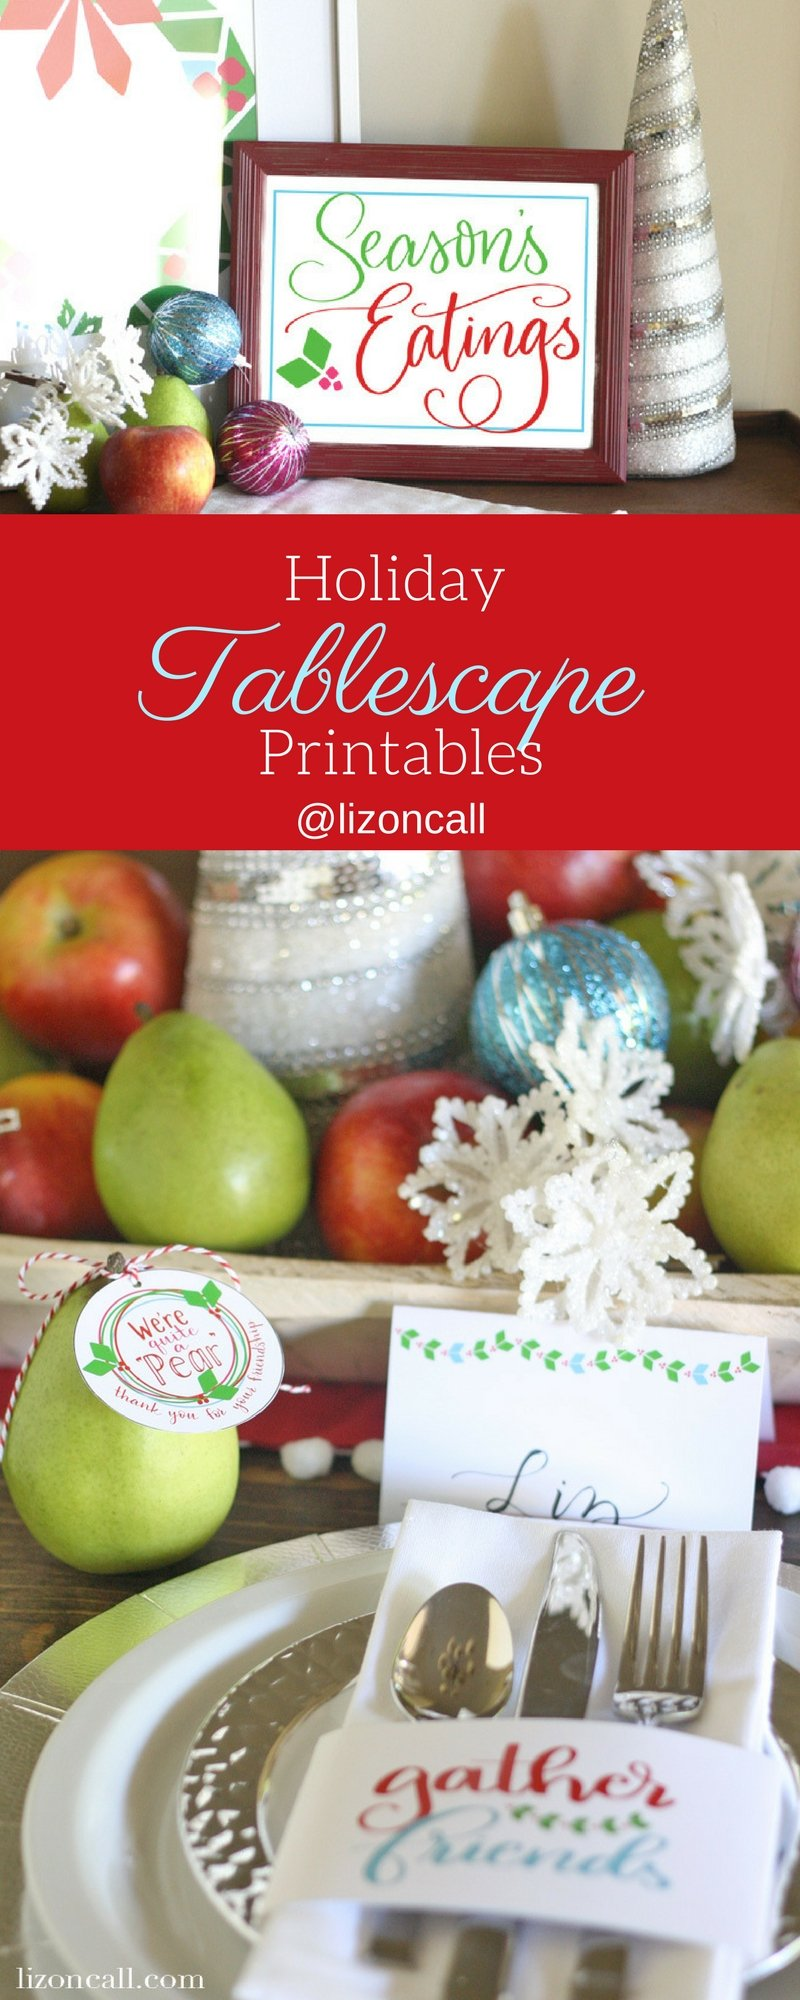 Whether you're hosting friends or family this year for the holidays, set your table with these bright and fun holiday tablescape printables. #christmas #freeprintables #christmastablescape #holidayprintables #holidaytablescape